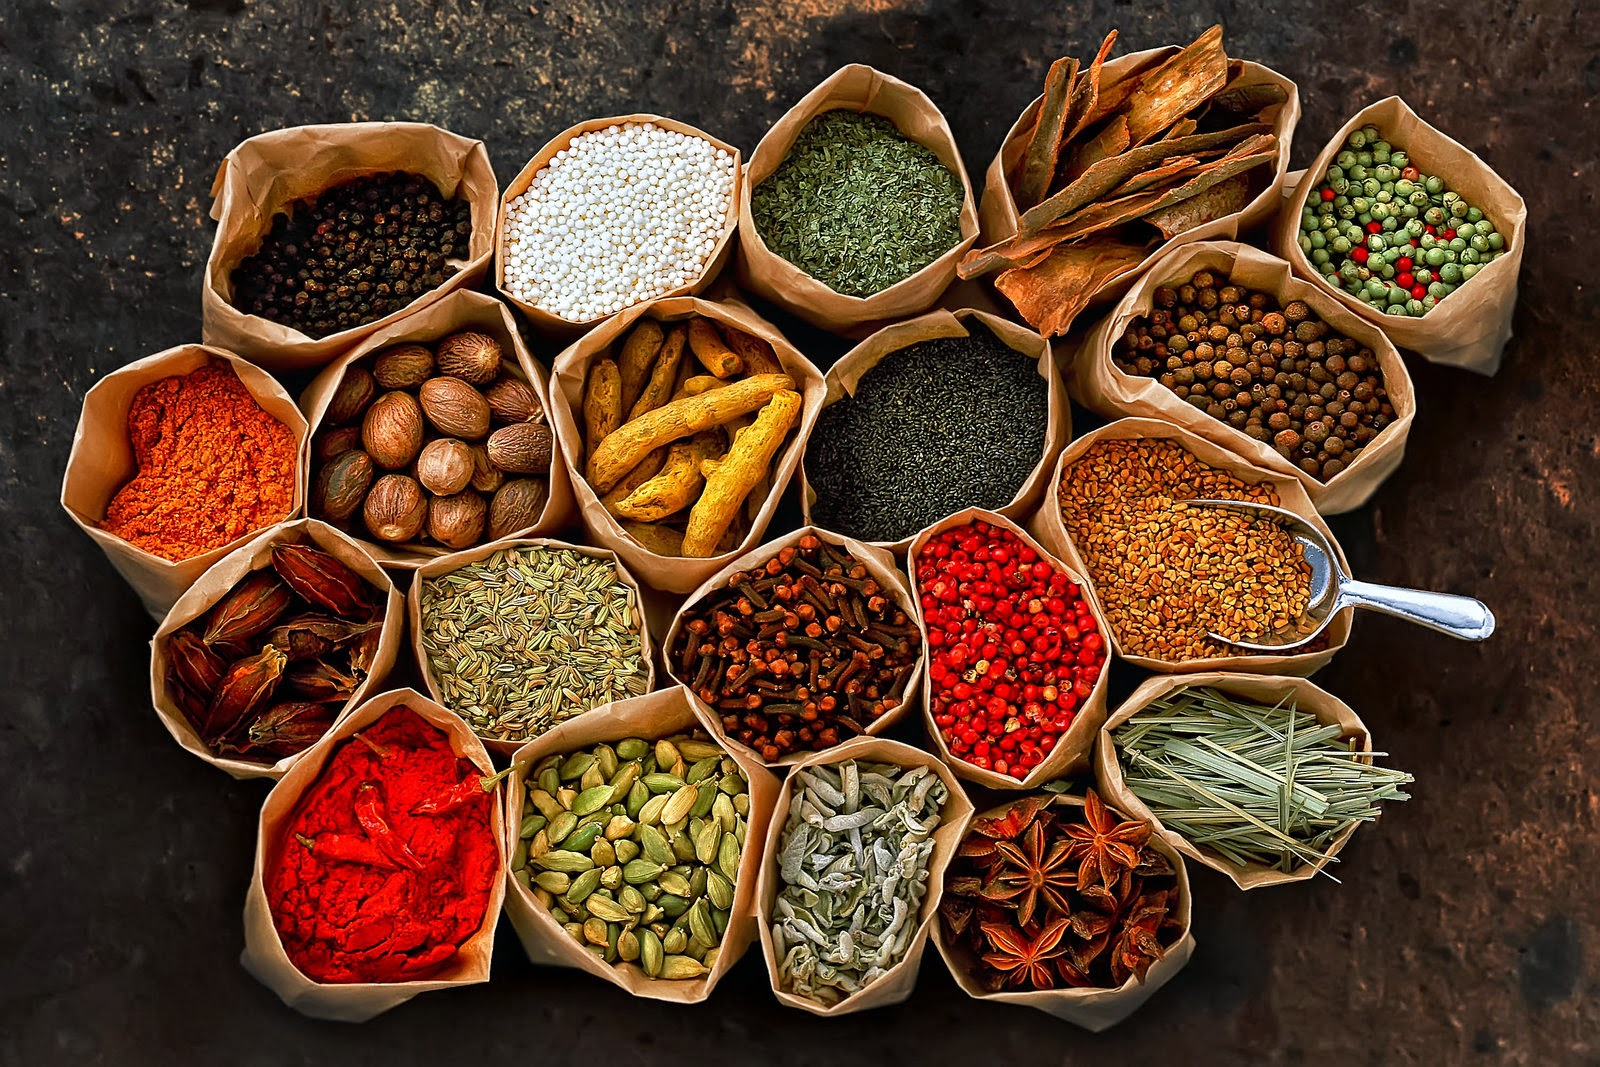 Buy herbs online - The Paleo Diet Doesn T Have To Be Bland Or Boring When You Buy Indian Flours And Spices Online You Want To Use Them Incorporating The Spices Of India